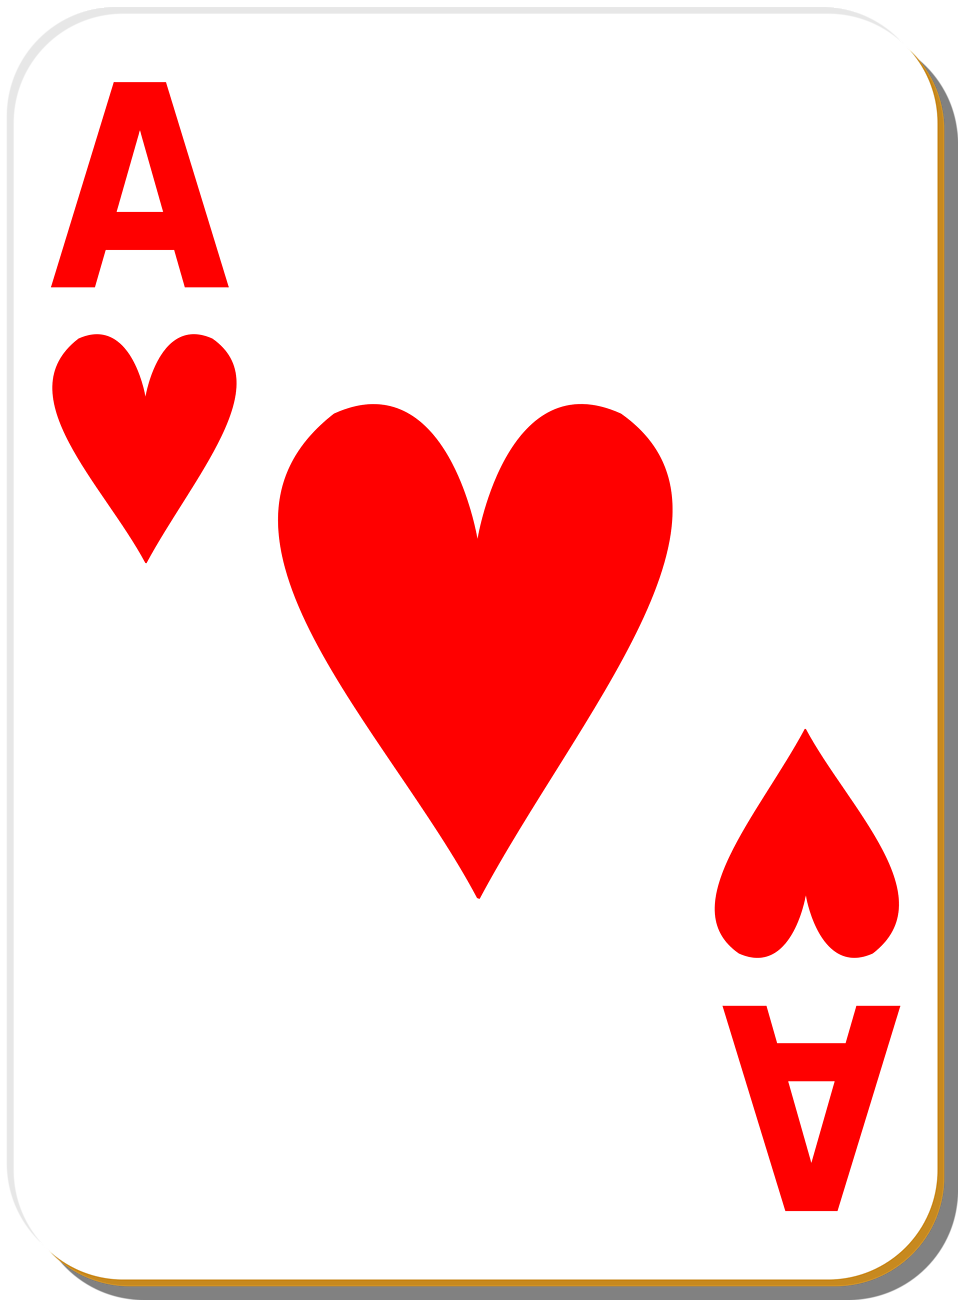 Ace Playing Card Clipart.